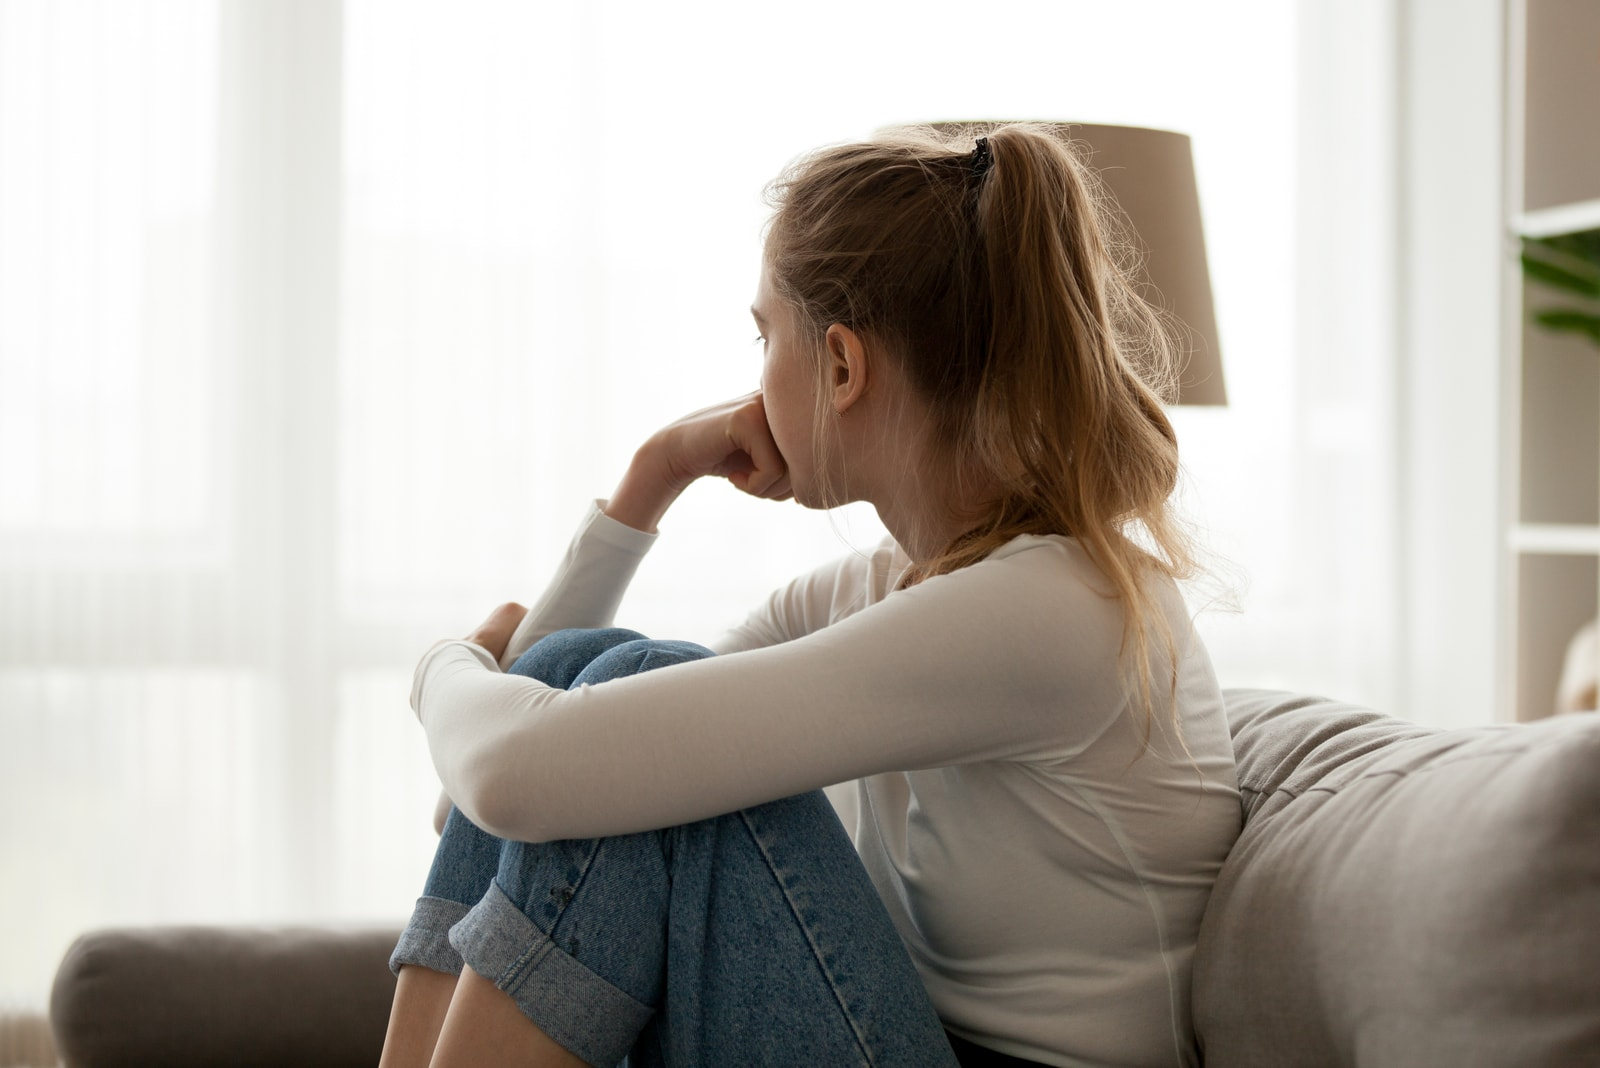 young thoughtful woman sitting on the couch